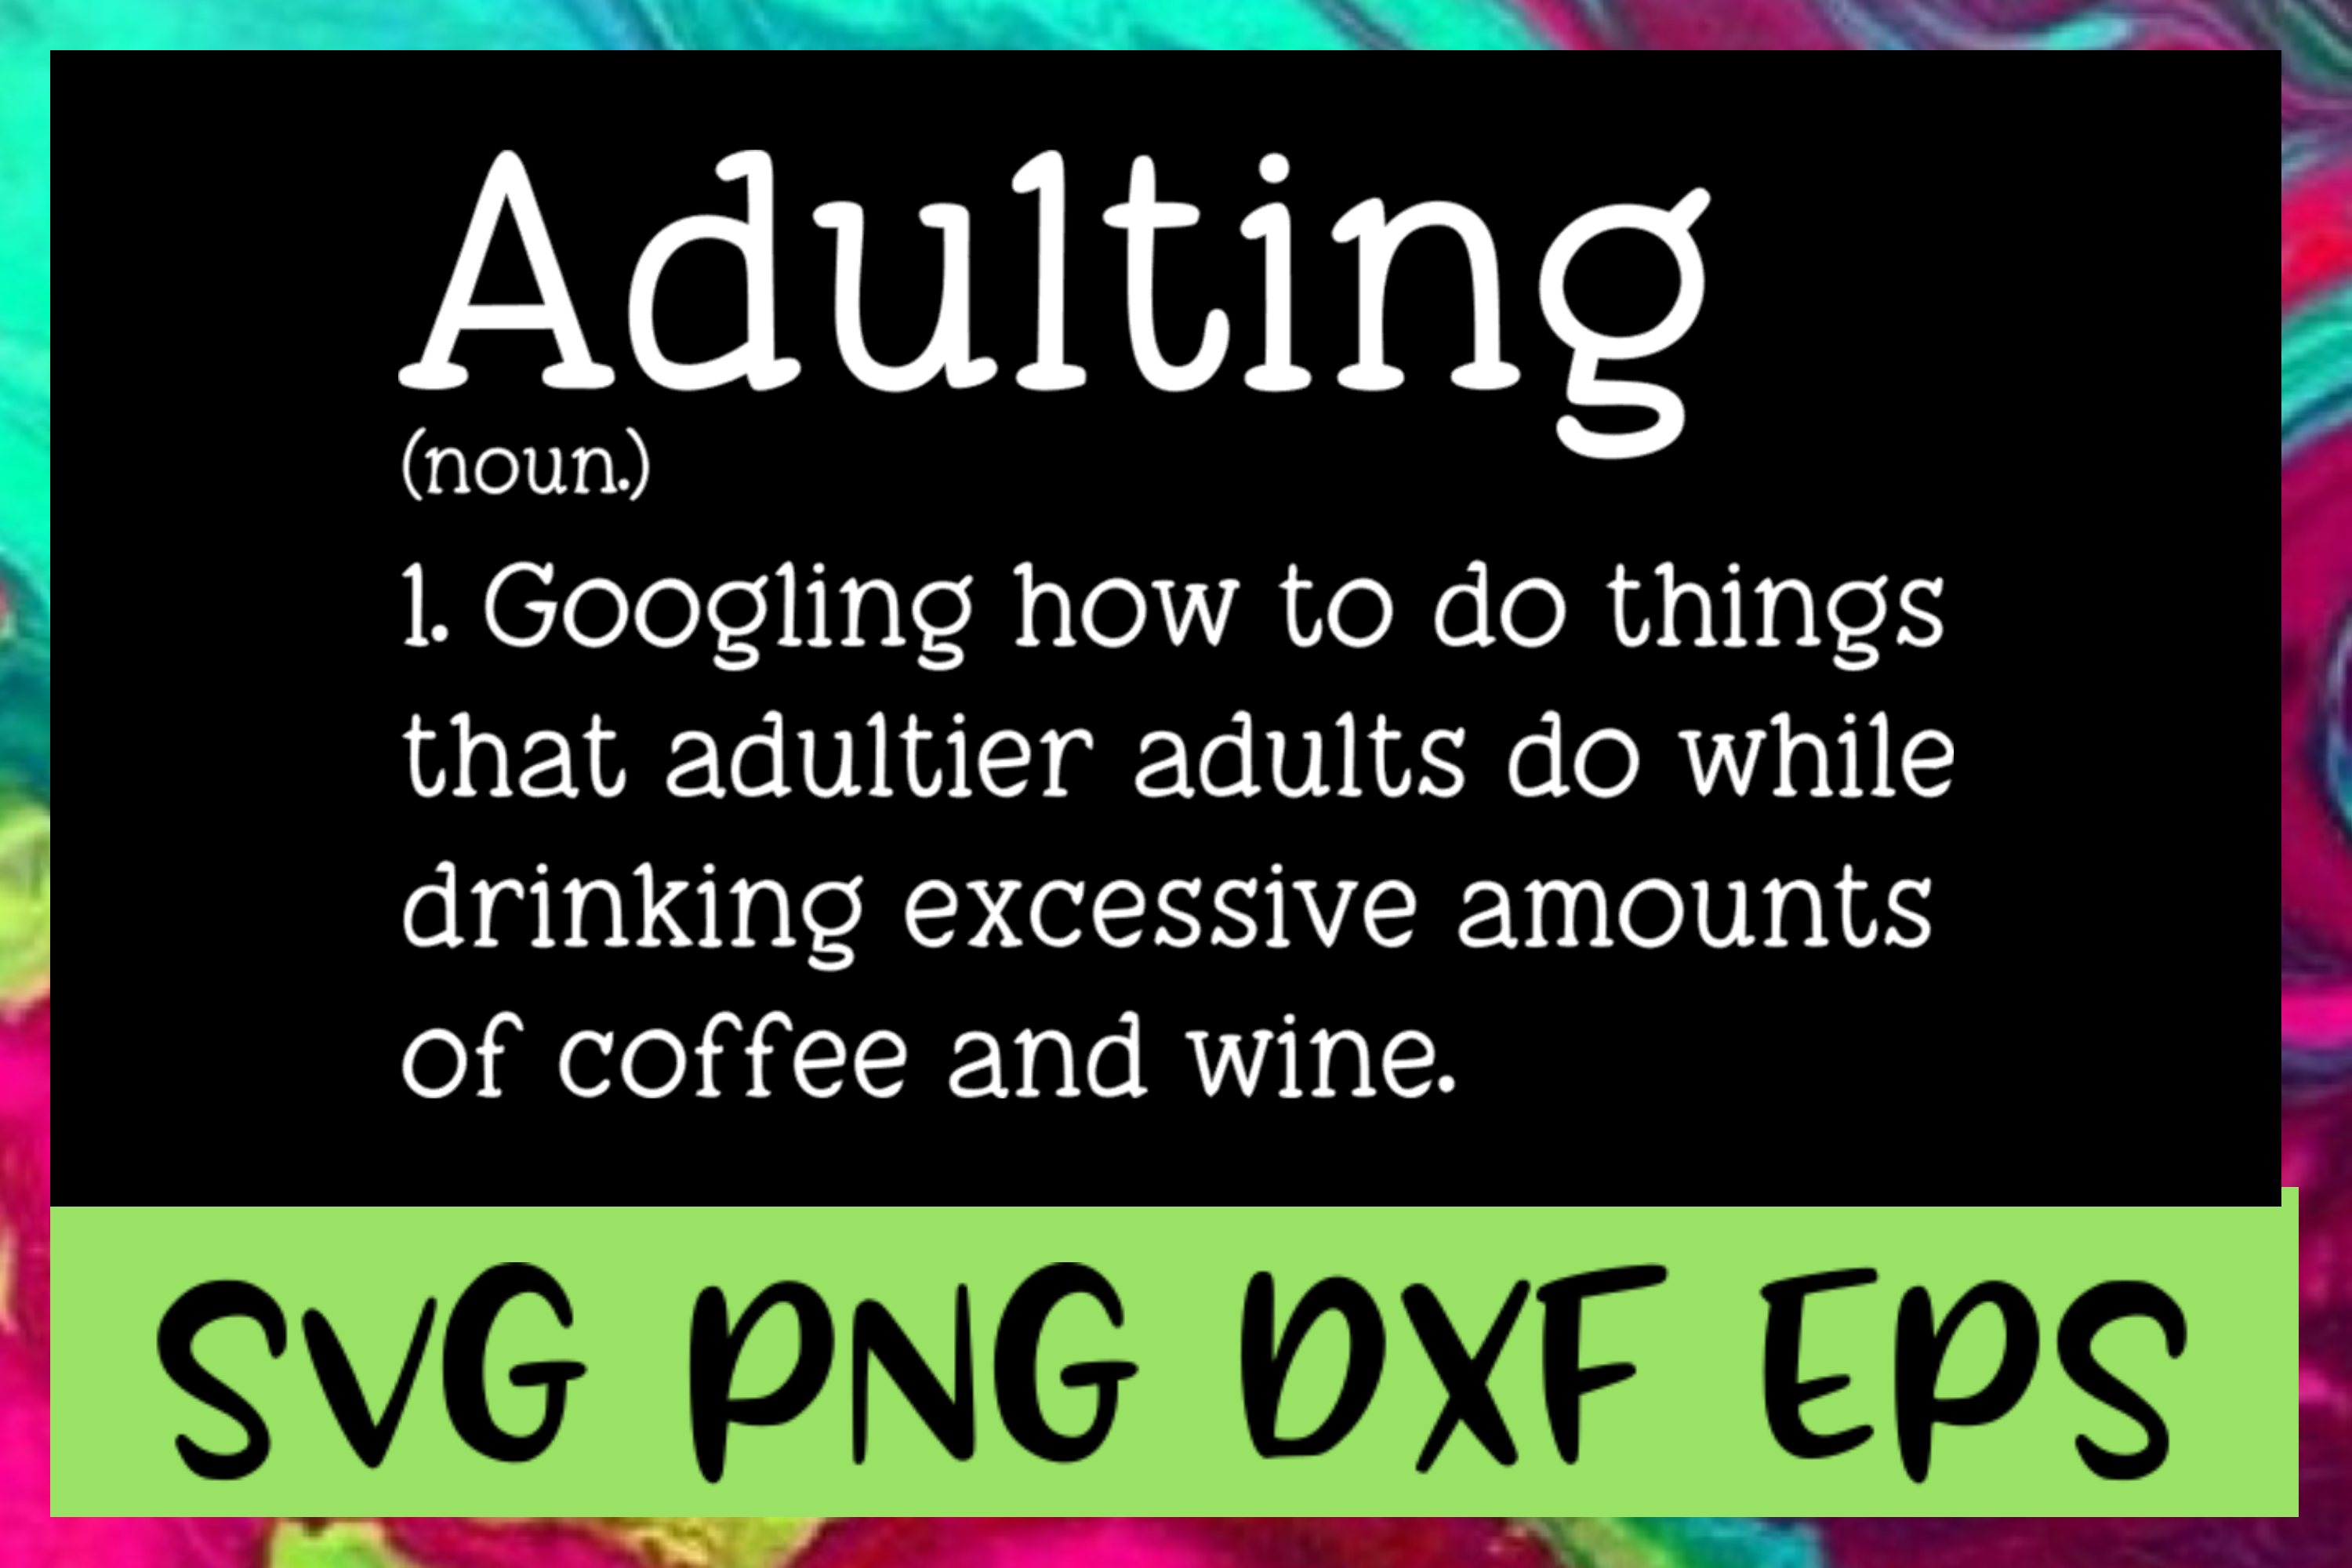 Adulting Definition SVG PNG DXF & EPS Design Files example image 1